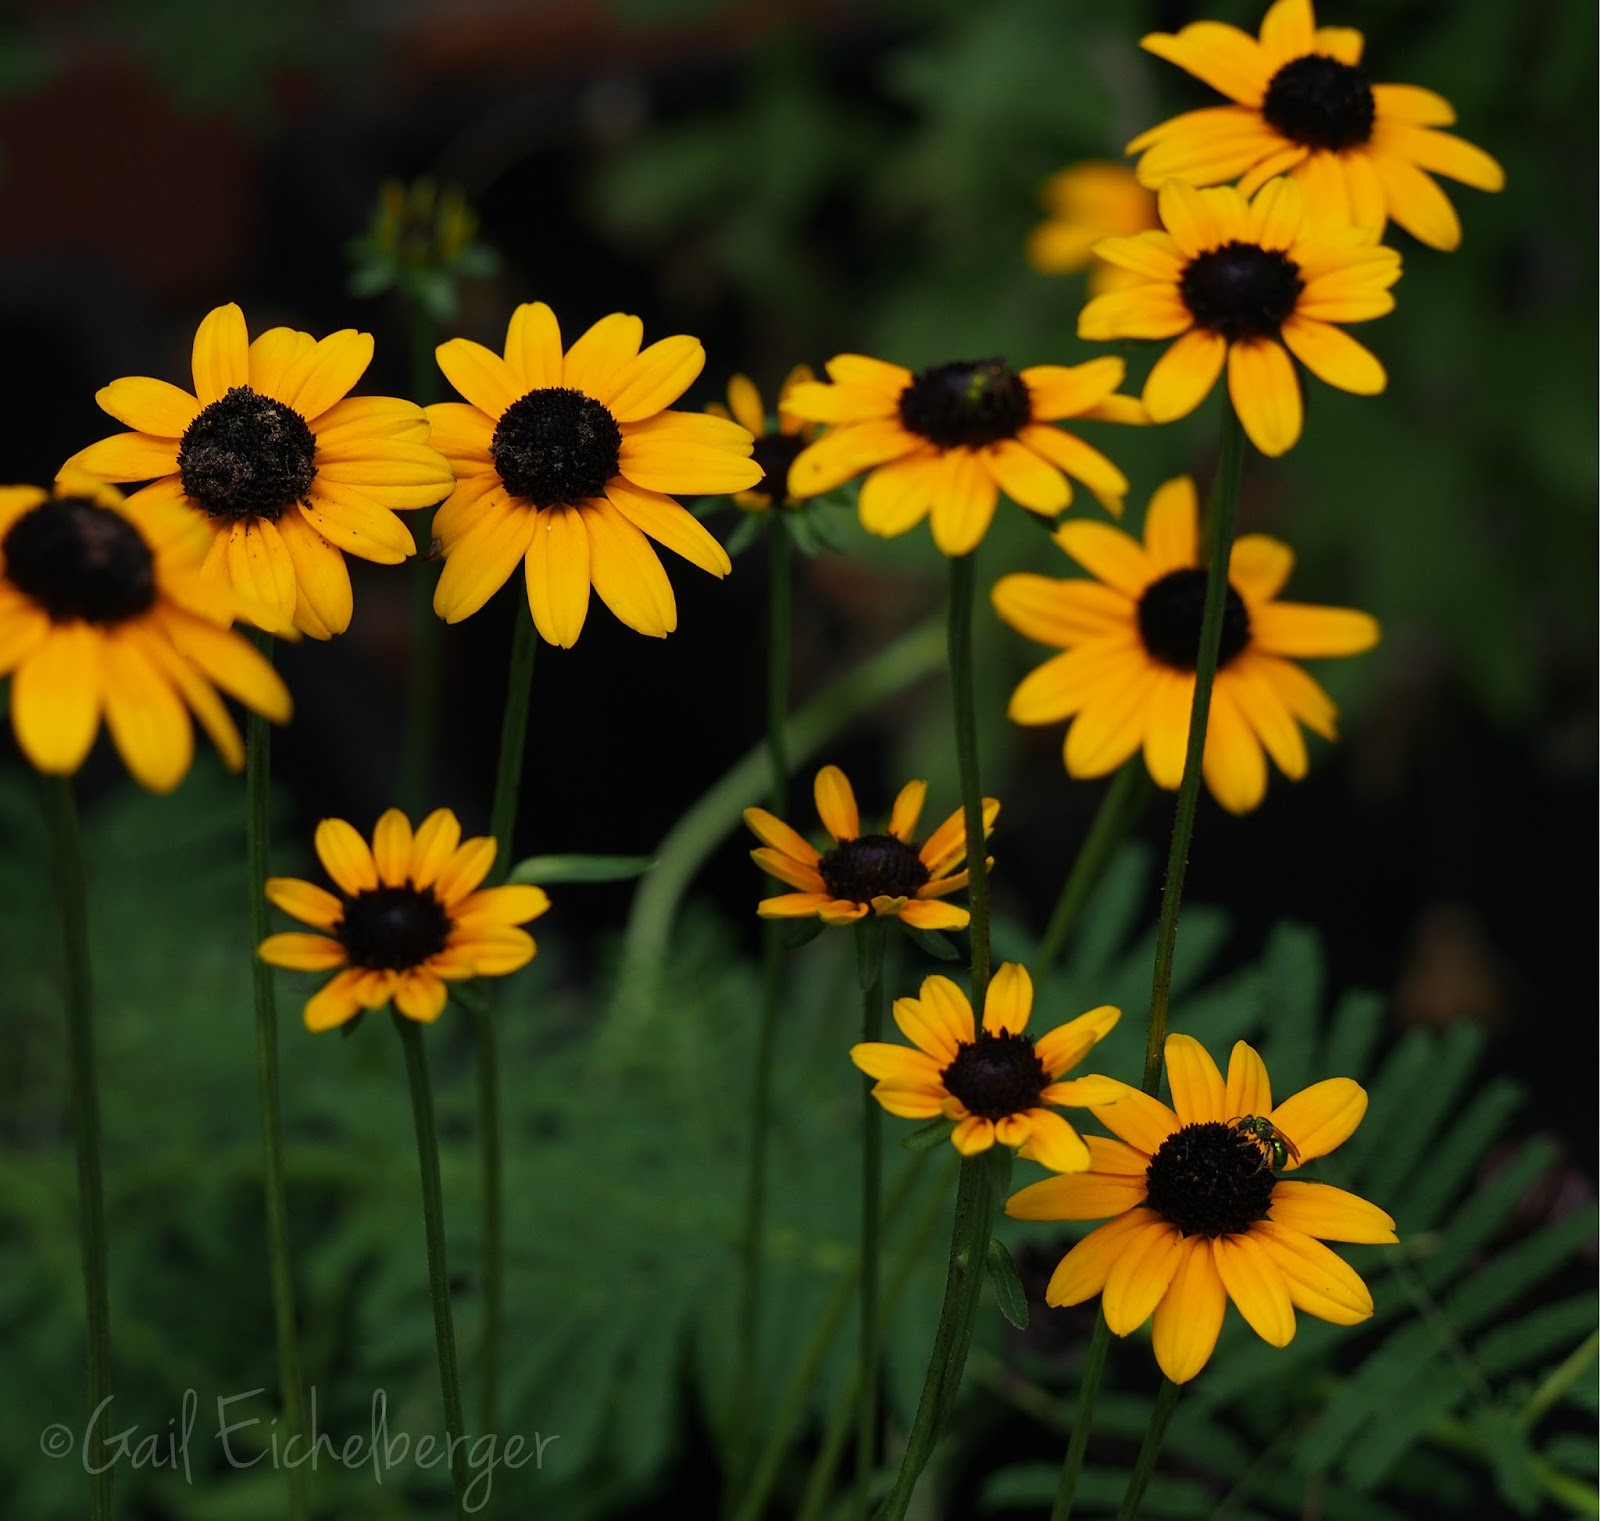 Flowers that bloom in the winter in missouri - Rudbeckia Fulgid Var Fulgida Might Be My Favorite Of The Susans This Year They Bloom Late And Flower For A Very Long Time The Long Stemmed Beauties Have